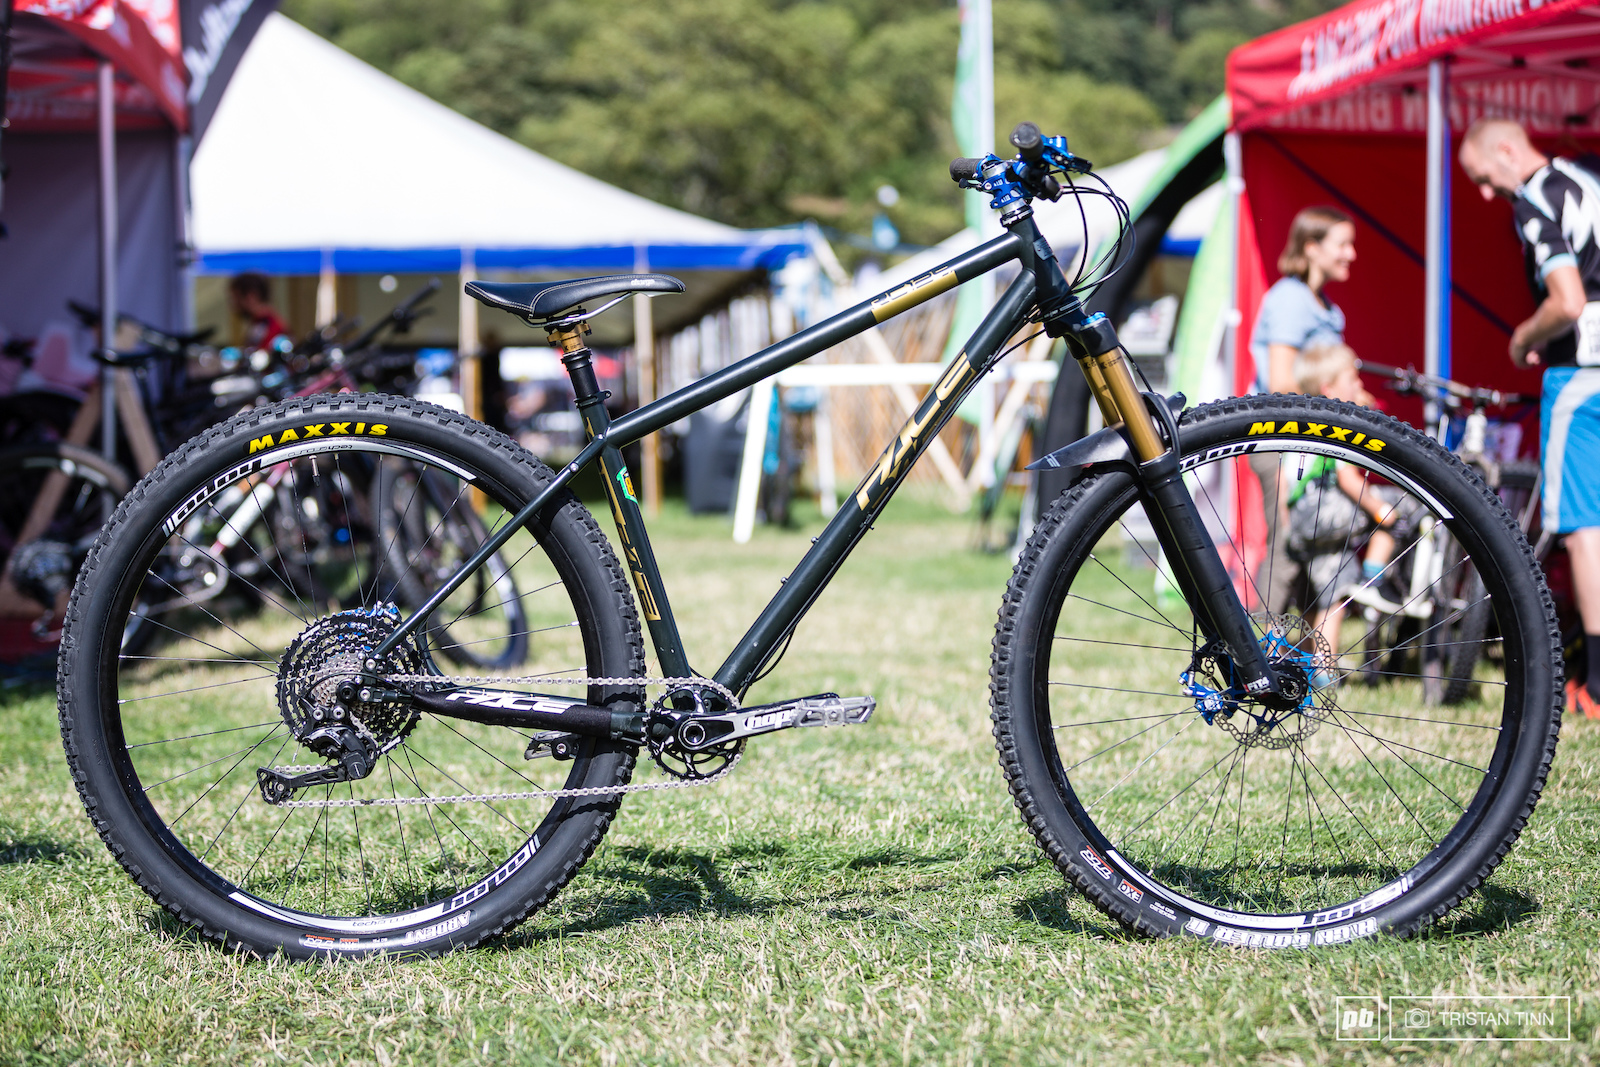 Ben Smith-Price s Pace RC129 29er hardtail made from Reynolds 853 featuring a 65 degree headangle panier mounts internal dropper routing with slide-out dropouts to increase chainstay length or run singlespeed. The frame is capable of taking up to a 150mm travel fork.